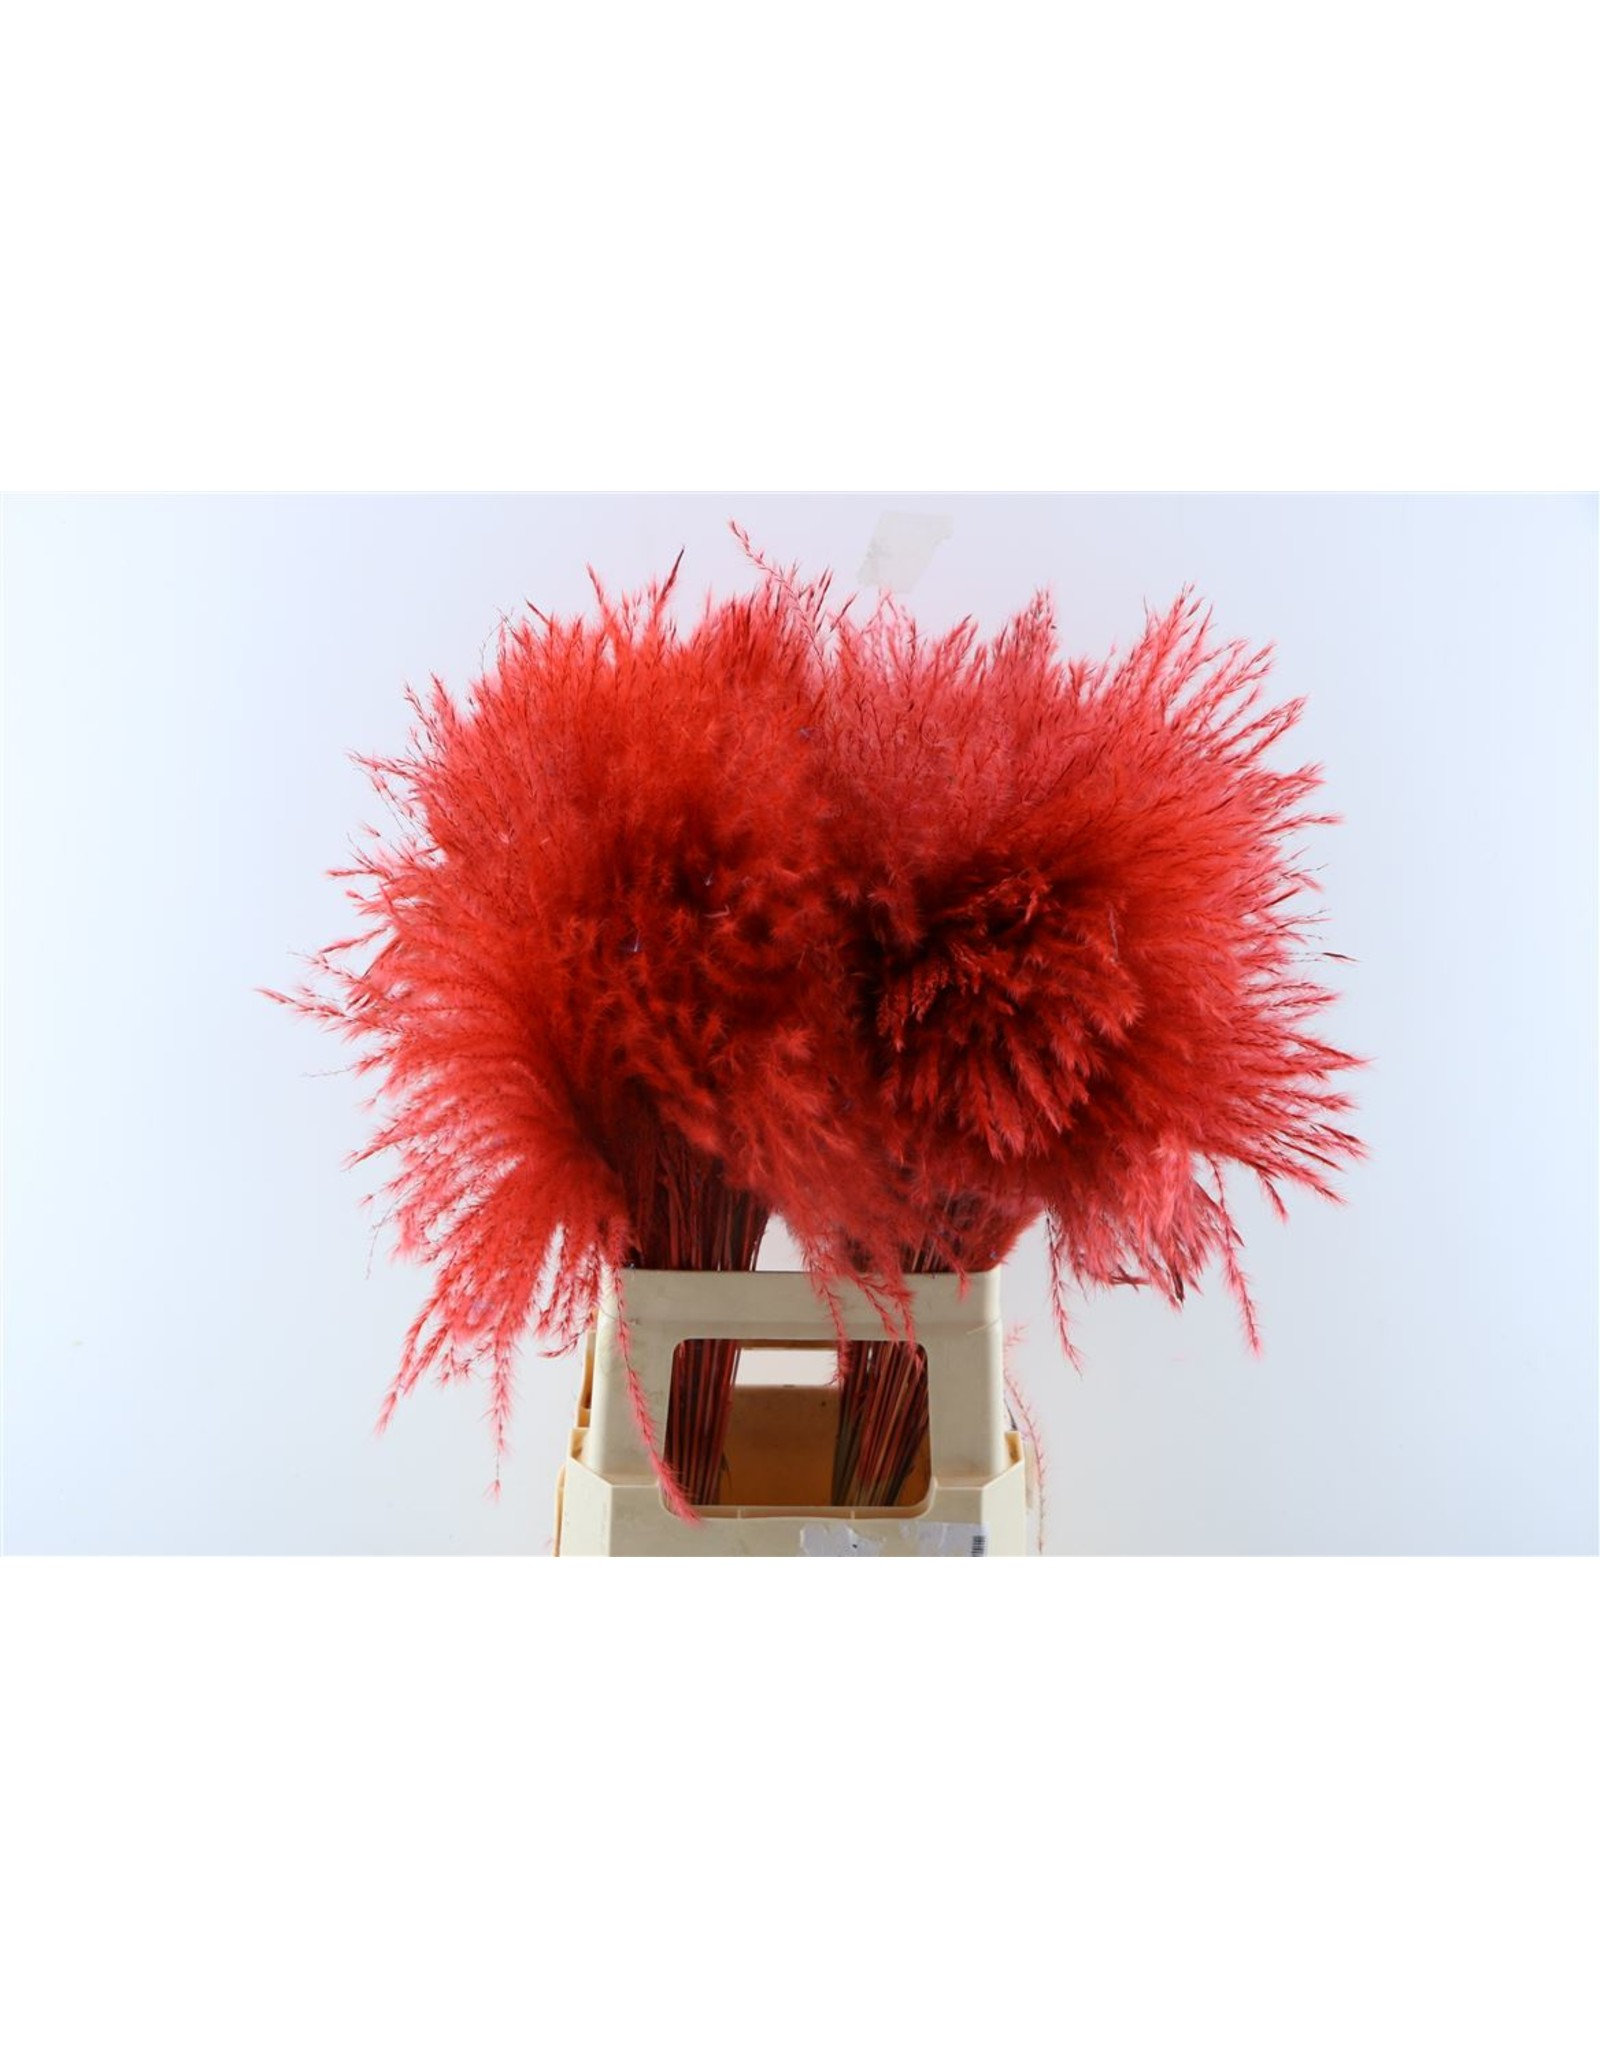 Dried Stipa Feather Rood P Stem x 50